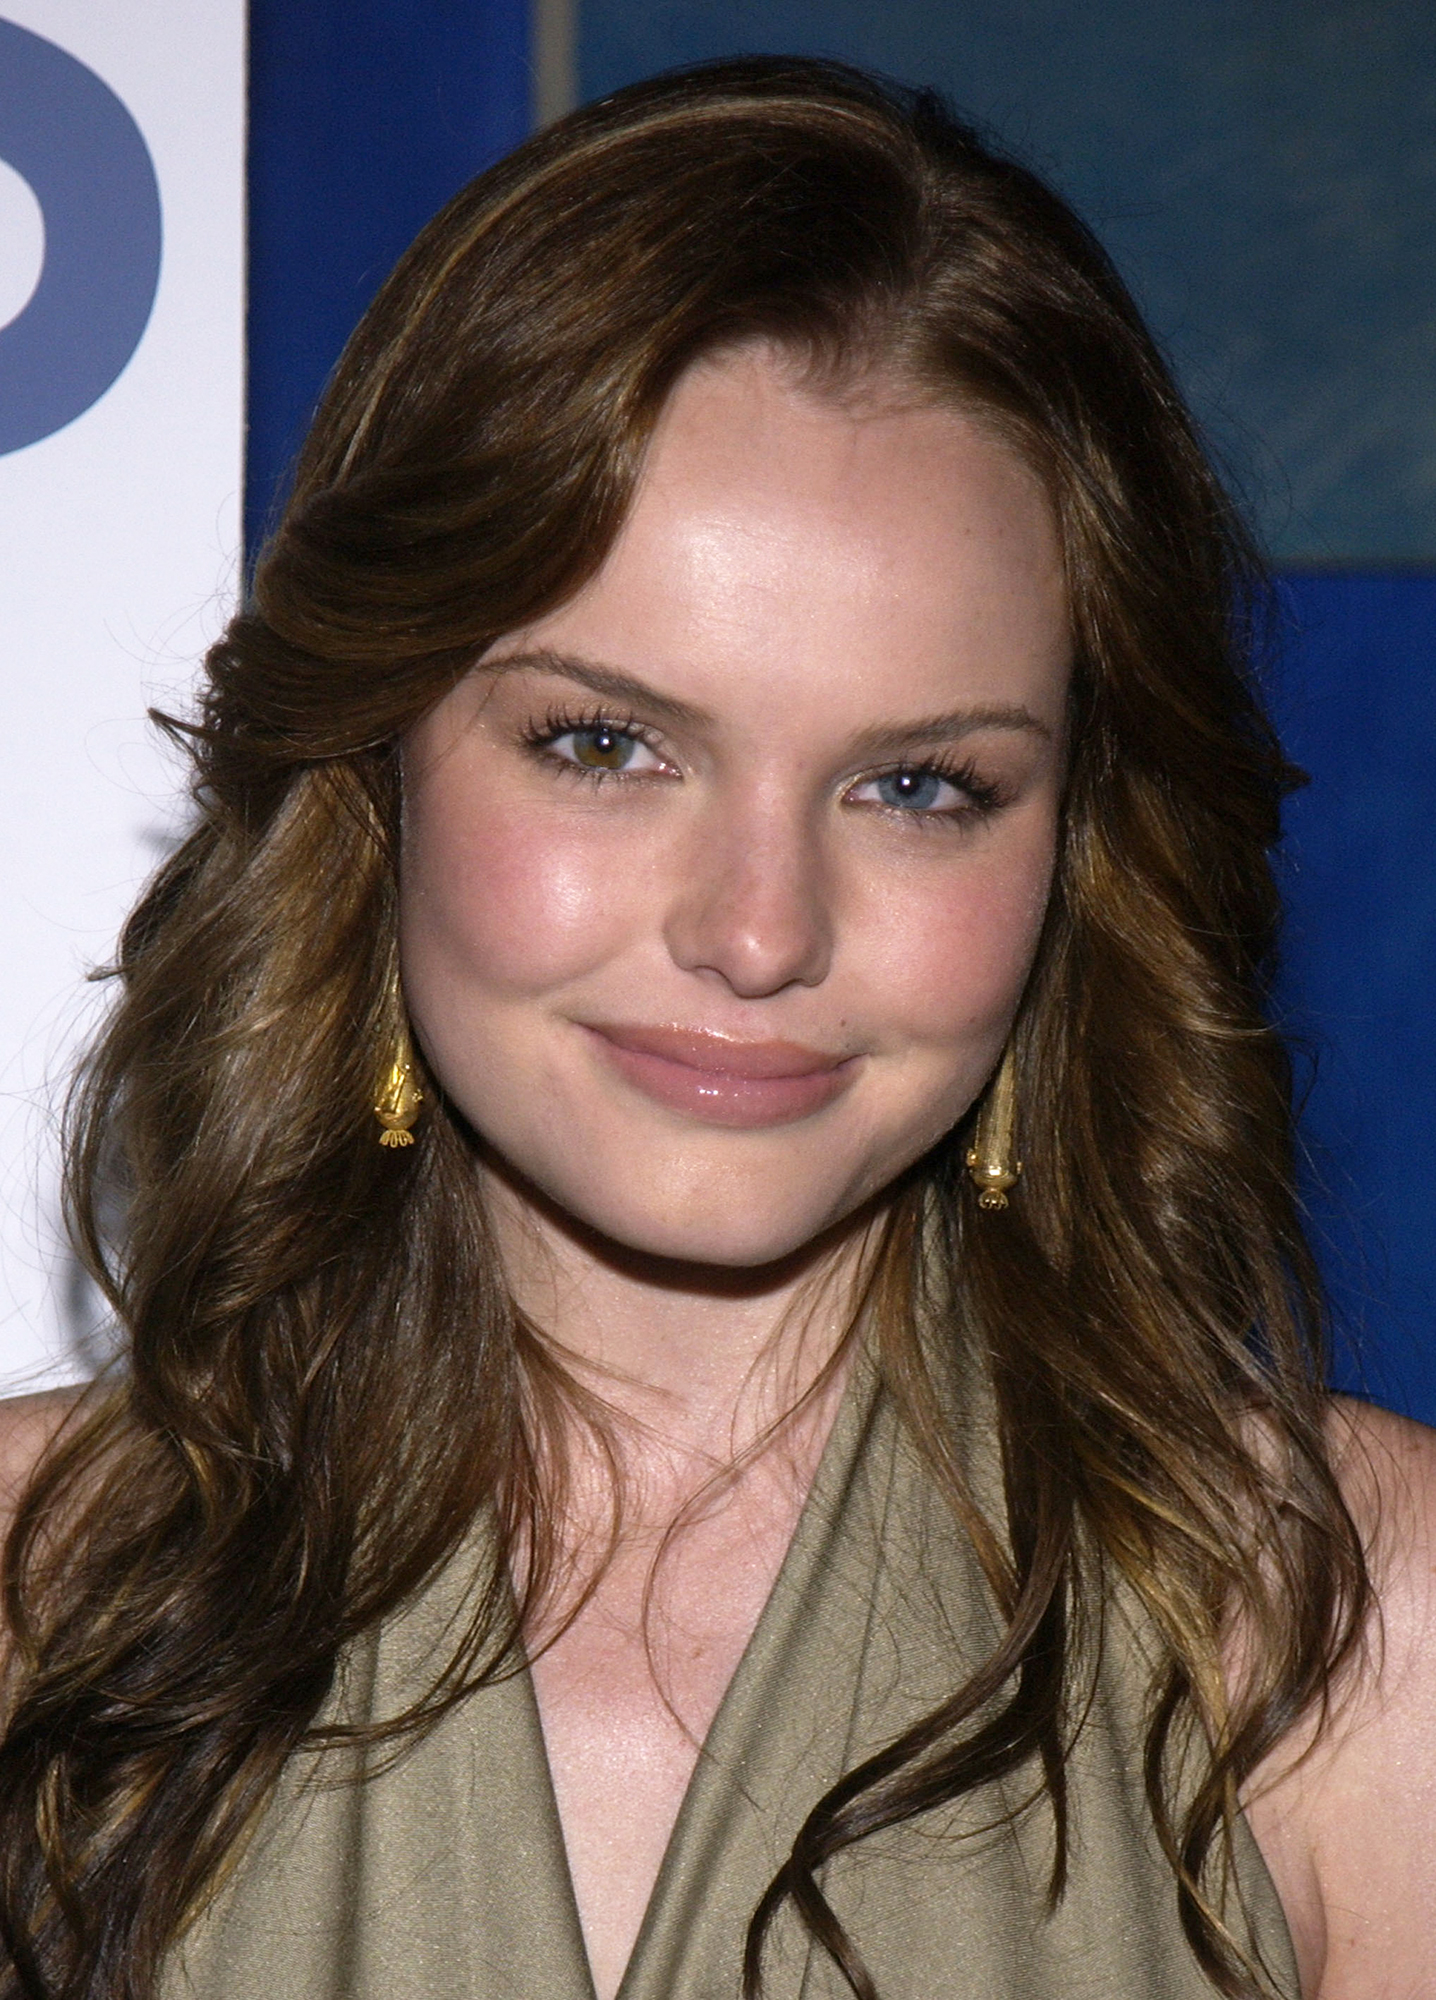 See Birthday Girl Kate Bosworth's Best Beauty Moments - The actress briefly ditched her signature blonde locks for a darker 'do in 2002.